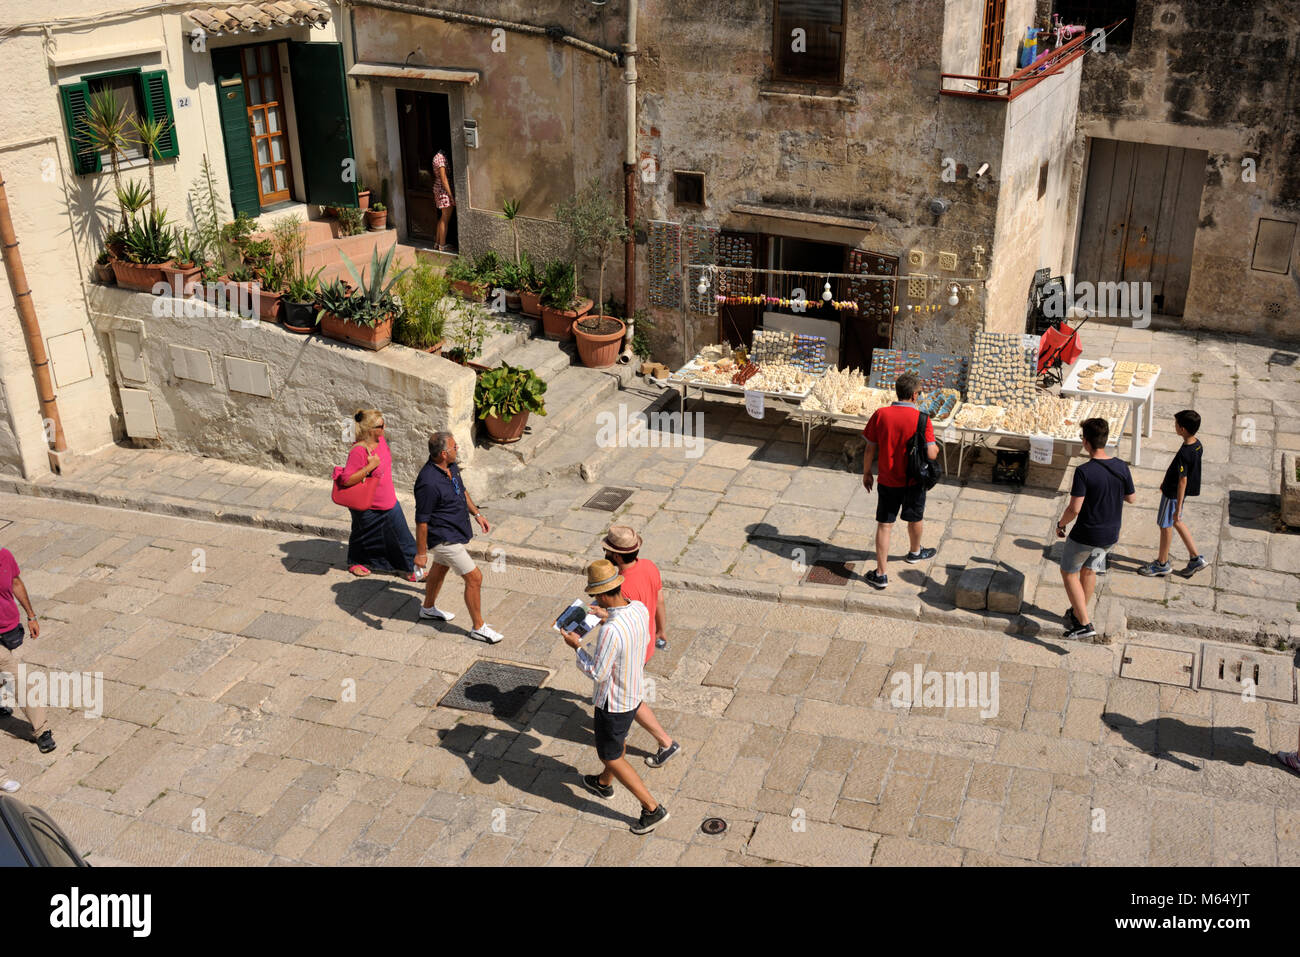 italy, basilicata, matera, sassi, sasso caveoso, cobbled street, tourists and souvenirs shop - Stock Image